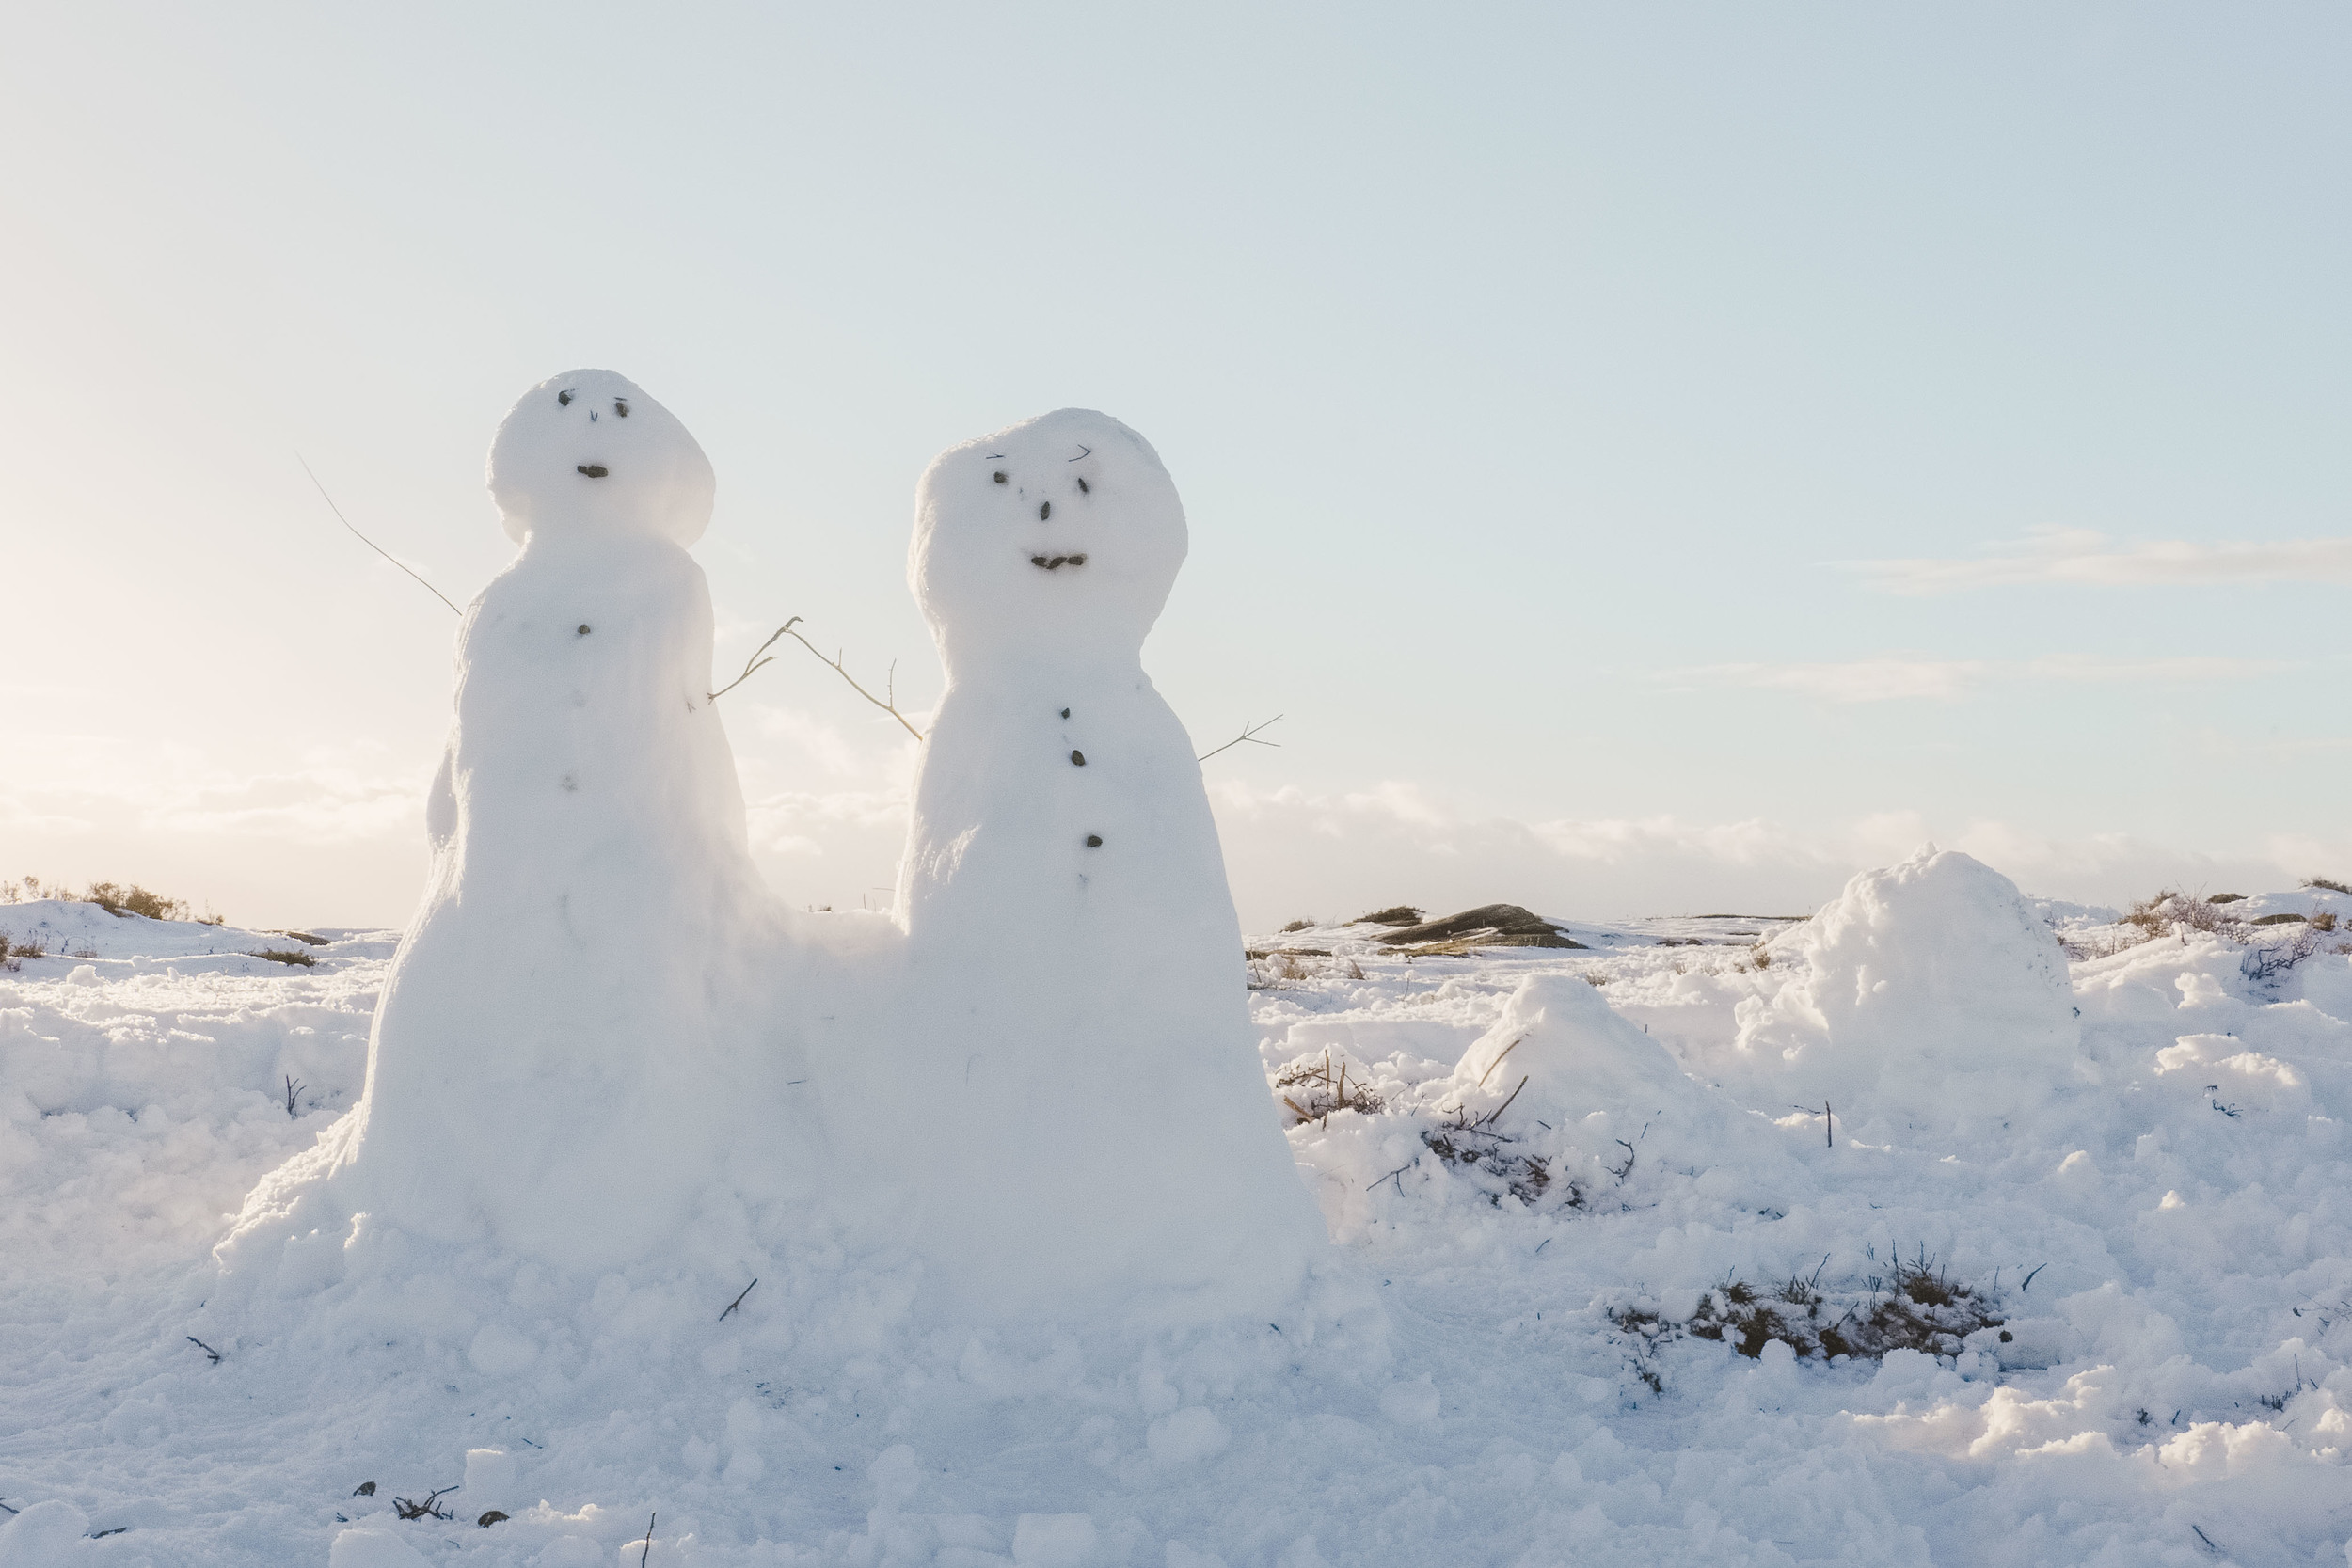 Snowmen on Curbar Edge  Fujifilm X-T1 + 18-135mm @ 25.4mm. f/22. 1/40. ISO 250